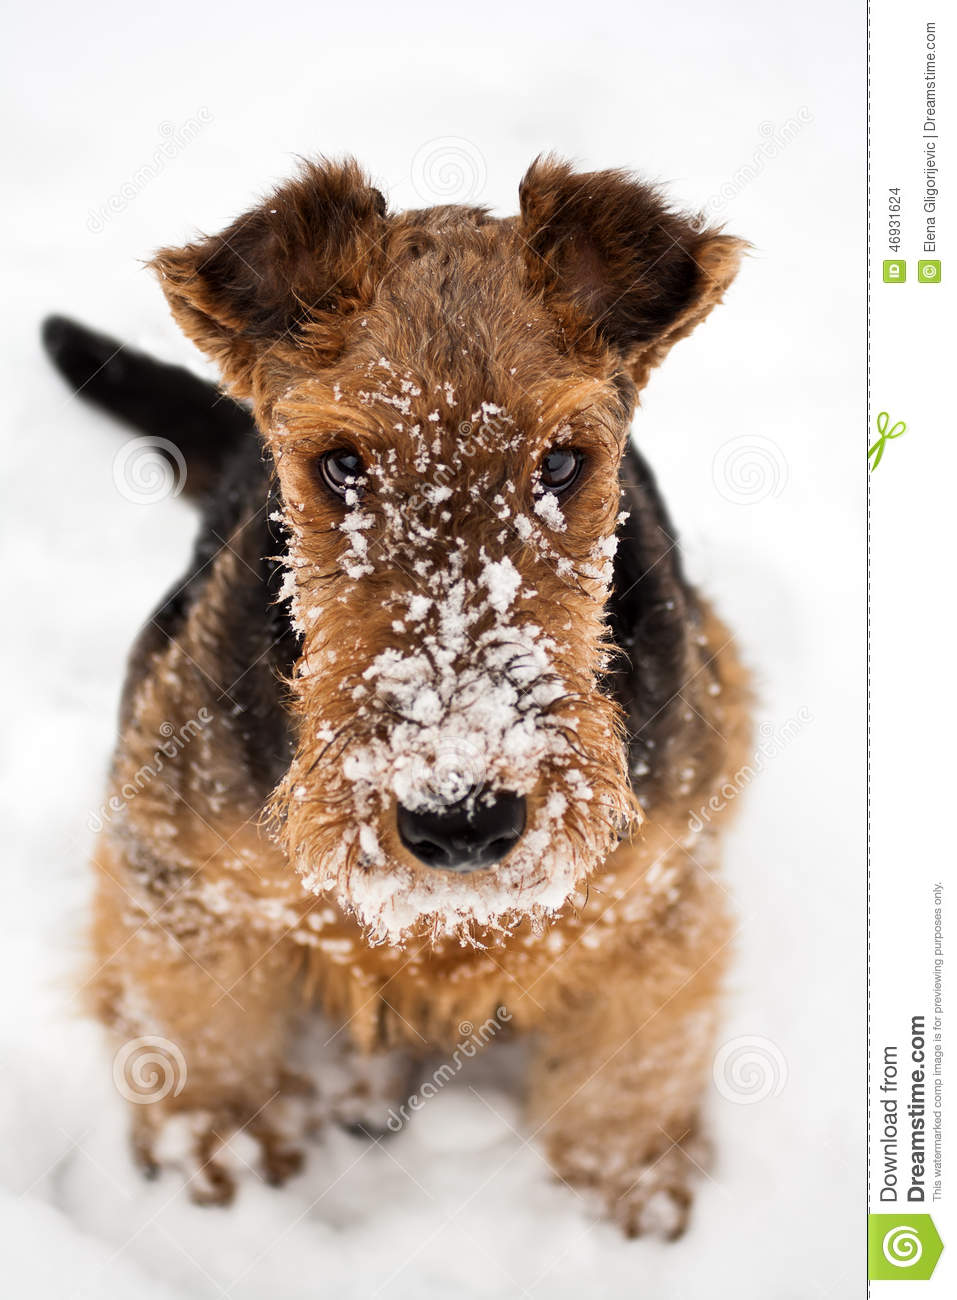 Airedale Terrier Puppy Dog Sitting At Snow Stock Photo